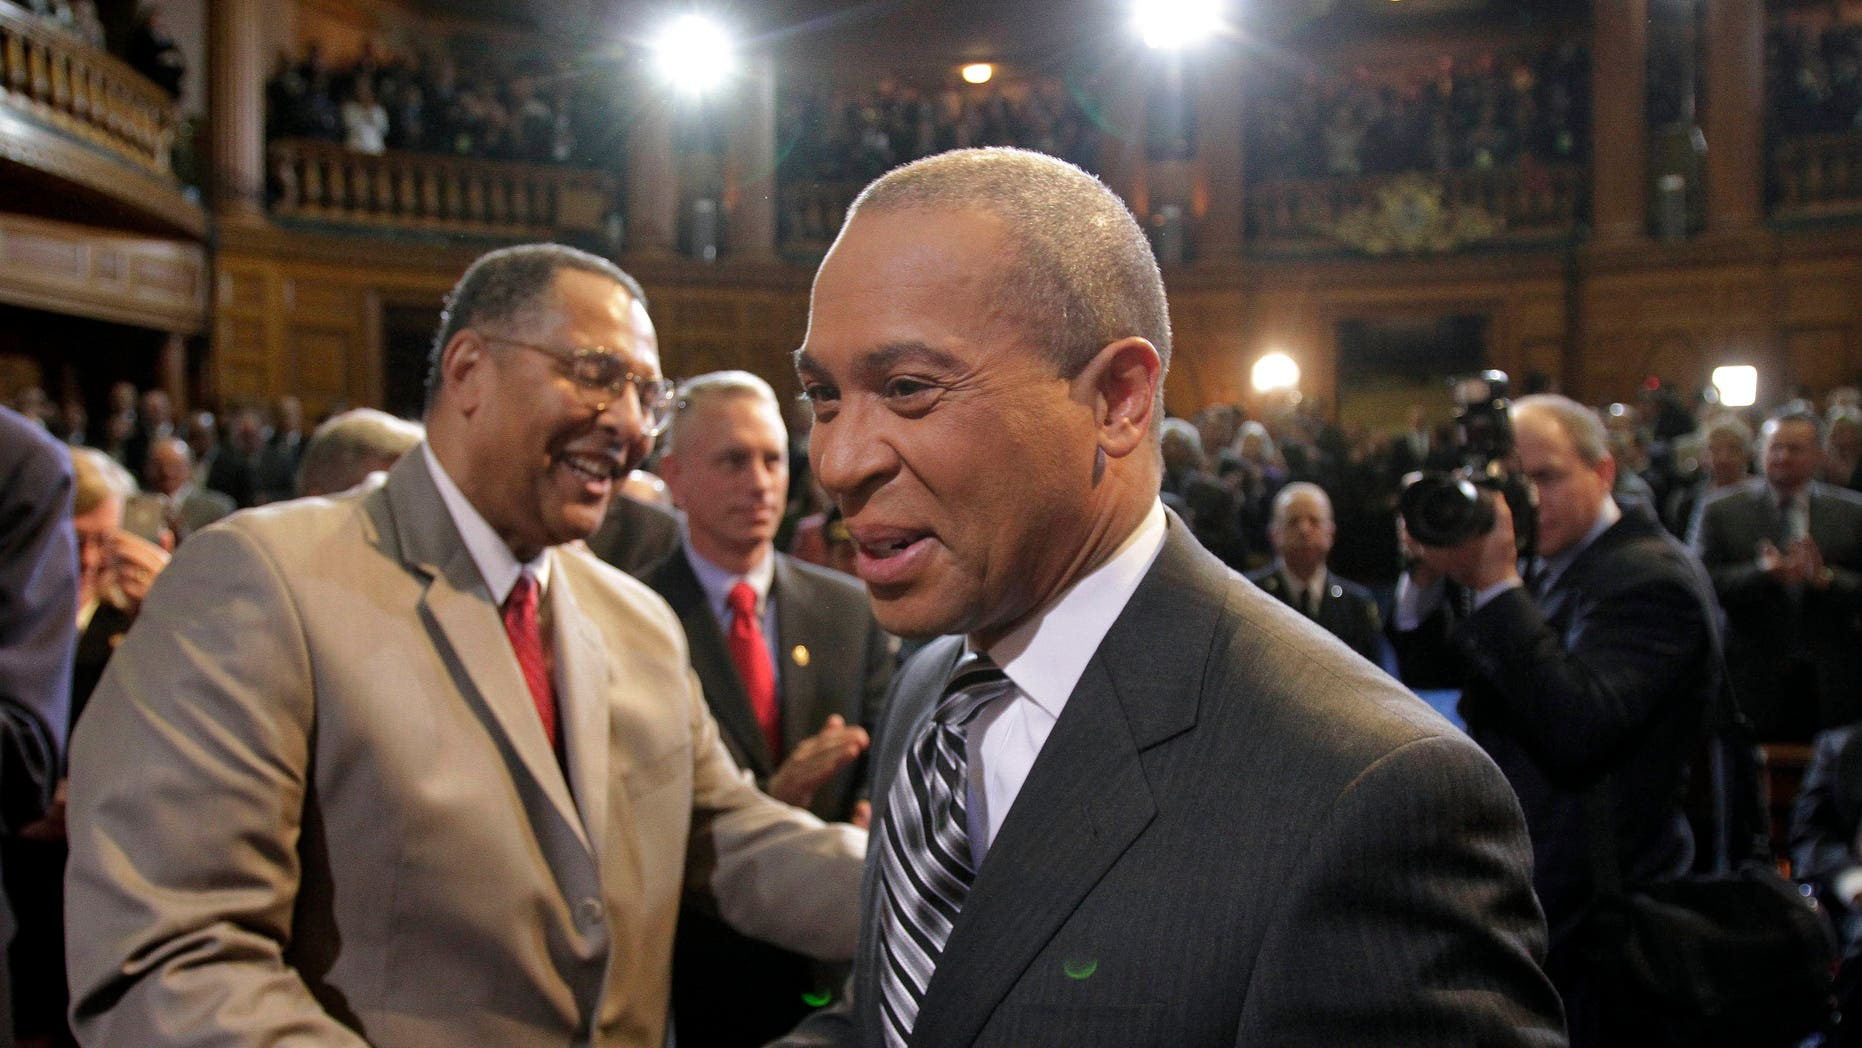 Jan. 6: Newly re-elected Massachusetts. Gov. Deval Patrick, right, is greeted by Chief Justice of the Massachusetts Supreme Court Roderick Ireland, left, as Patrick arrives in the House Chamber at the Statehouse, in Boston.